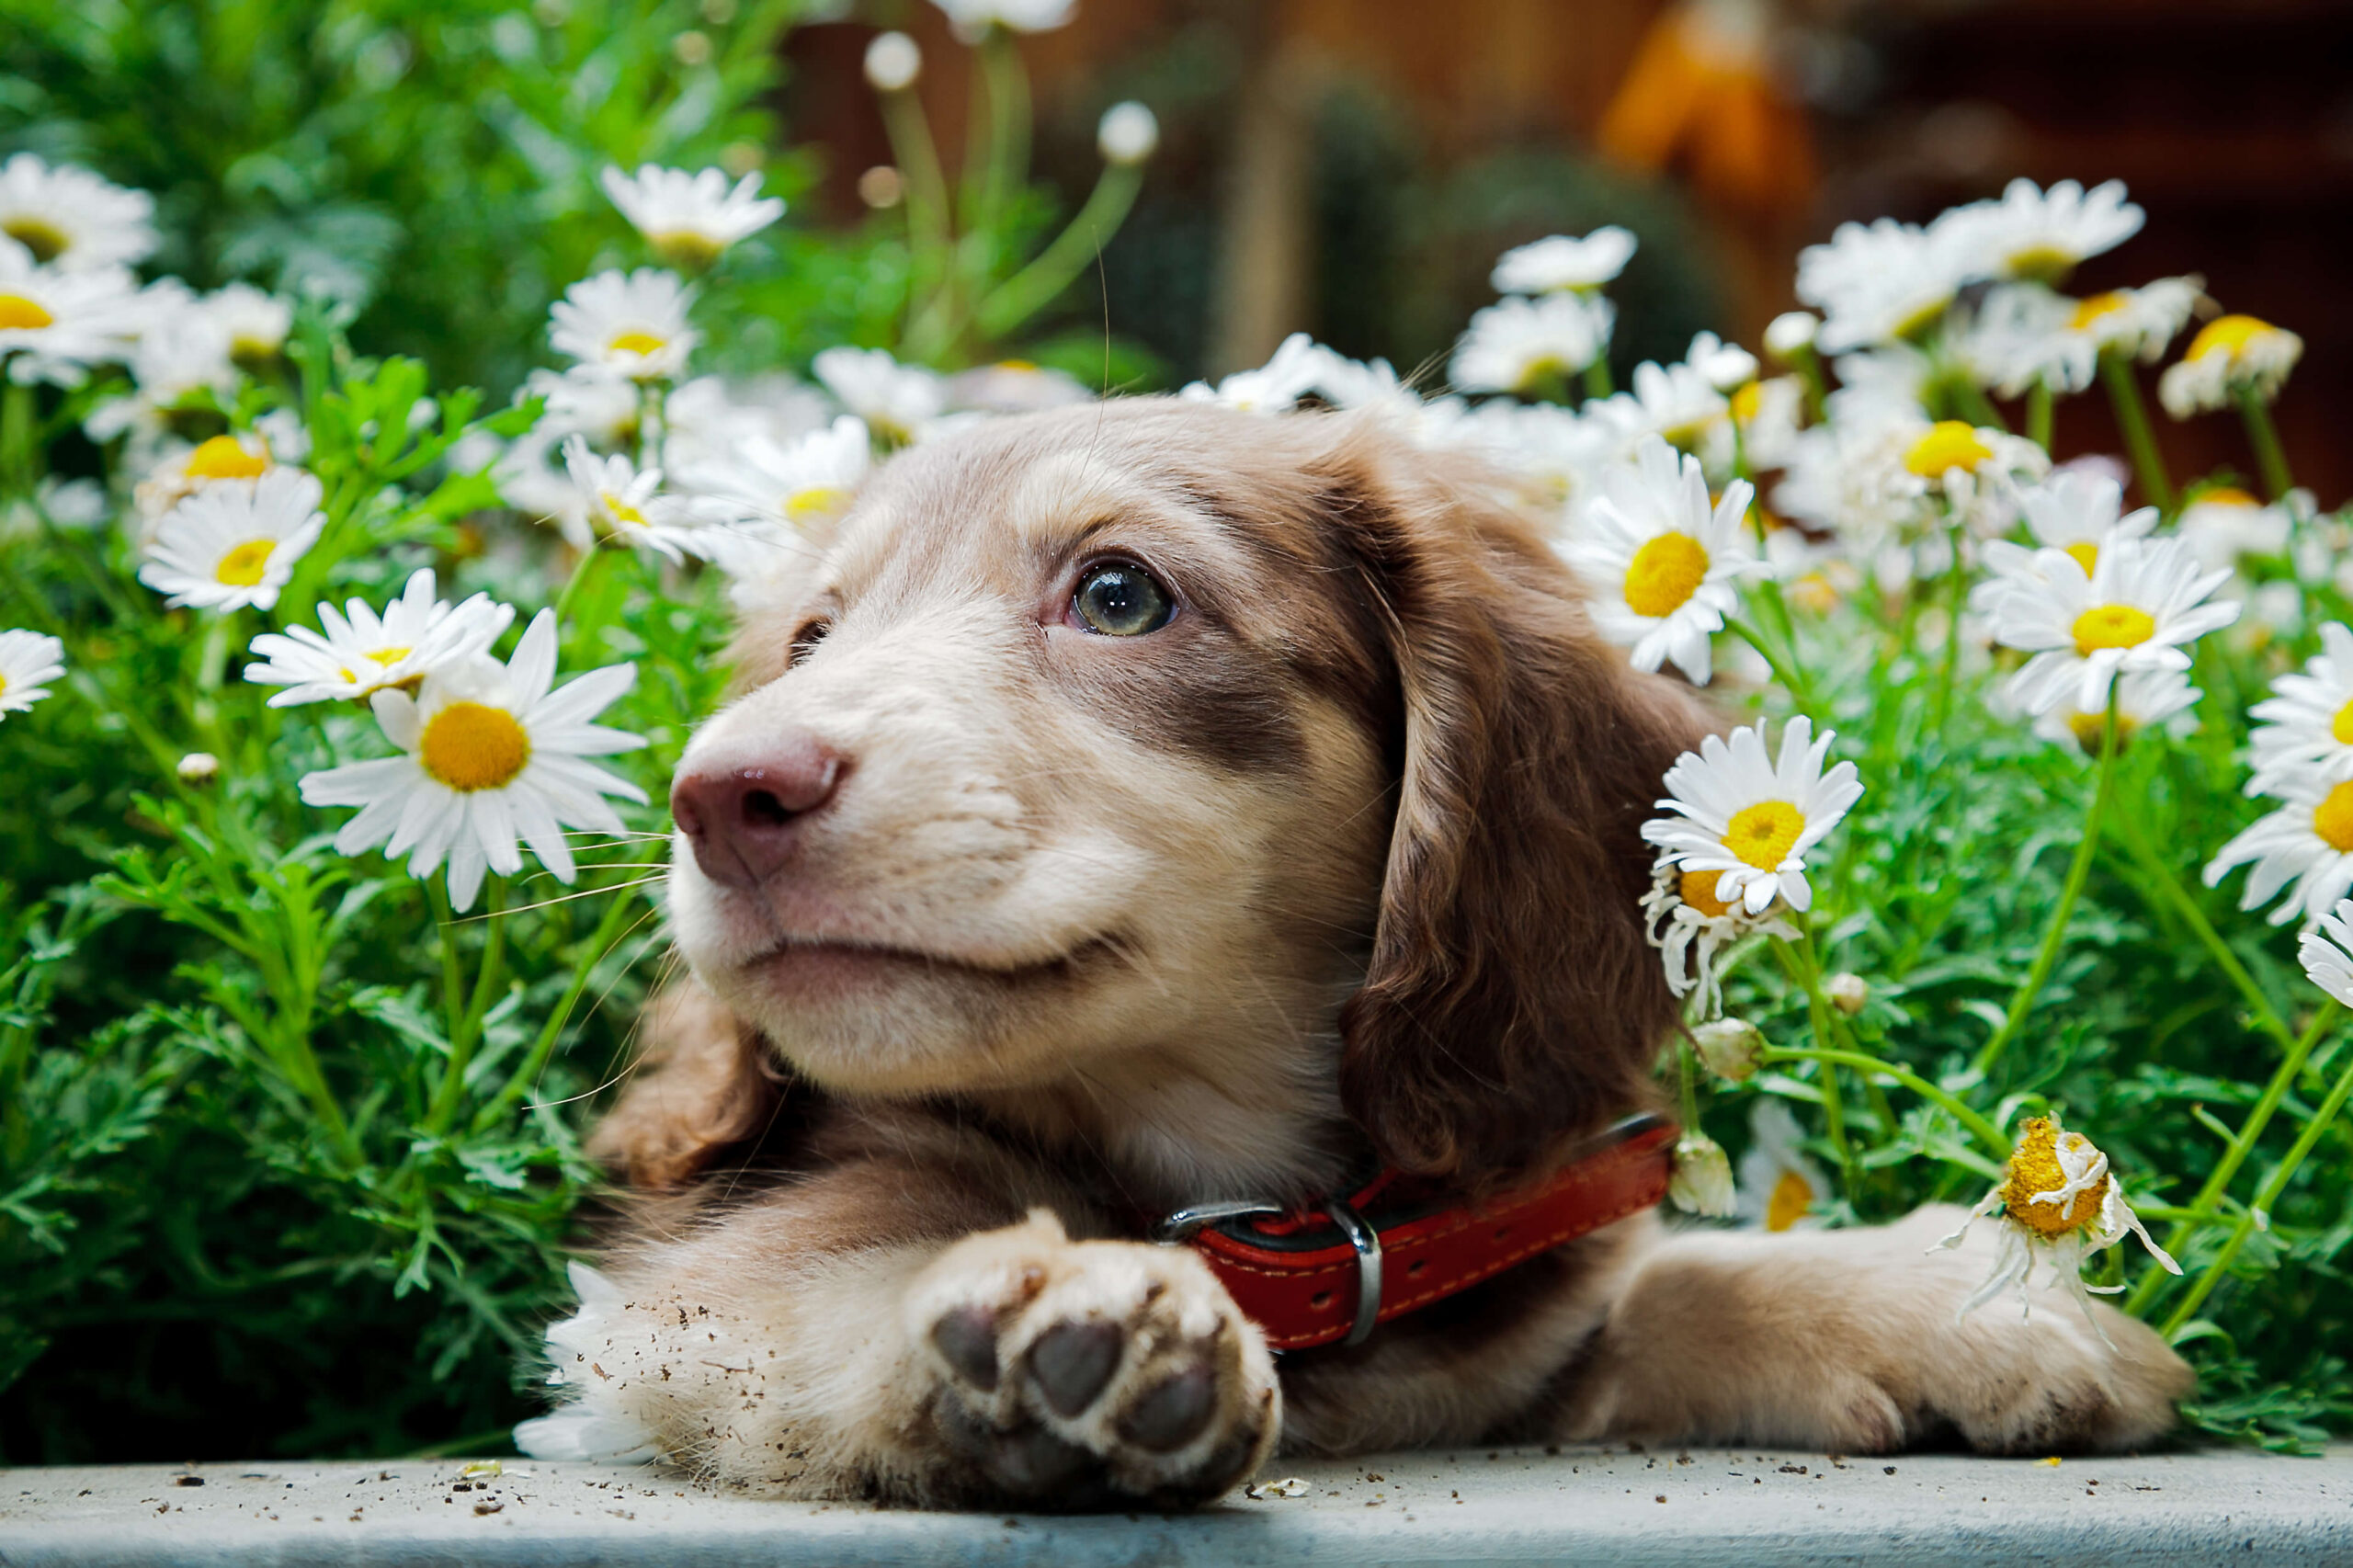 Landscaping Plants That Are Toxic to Dogs